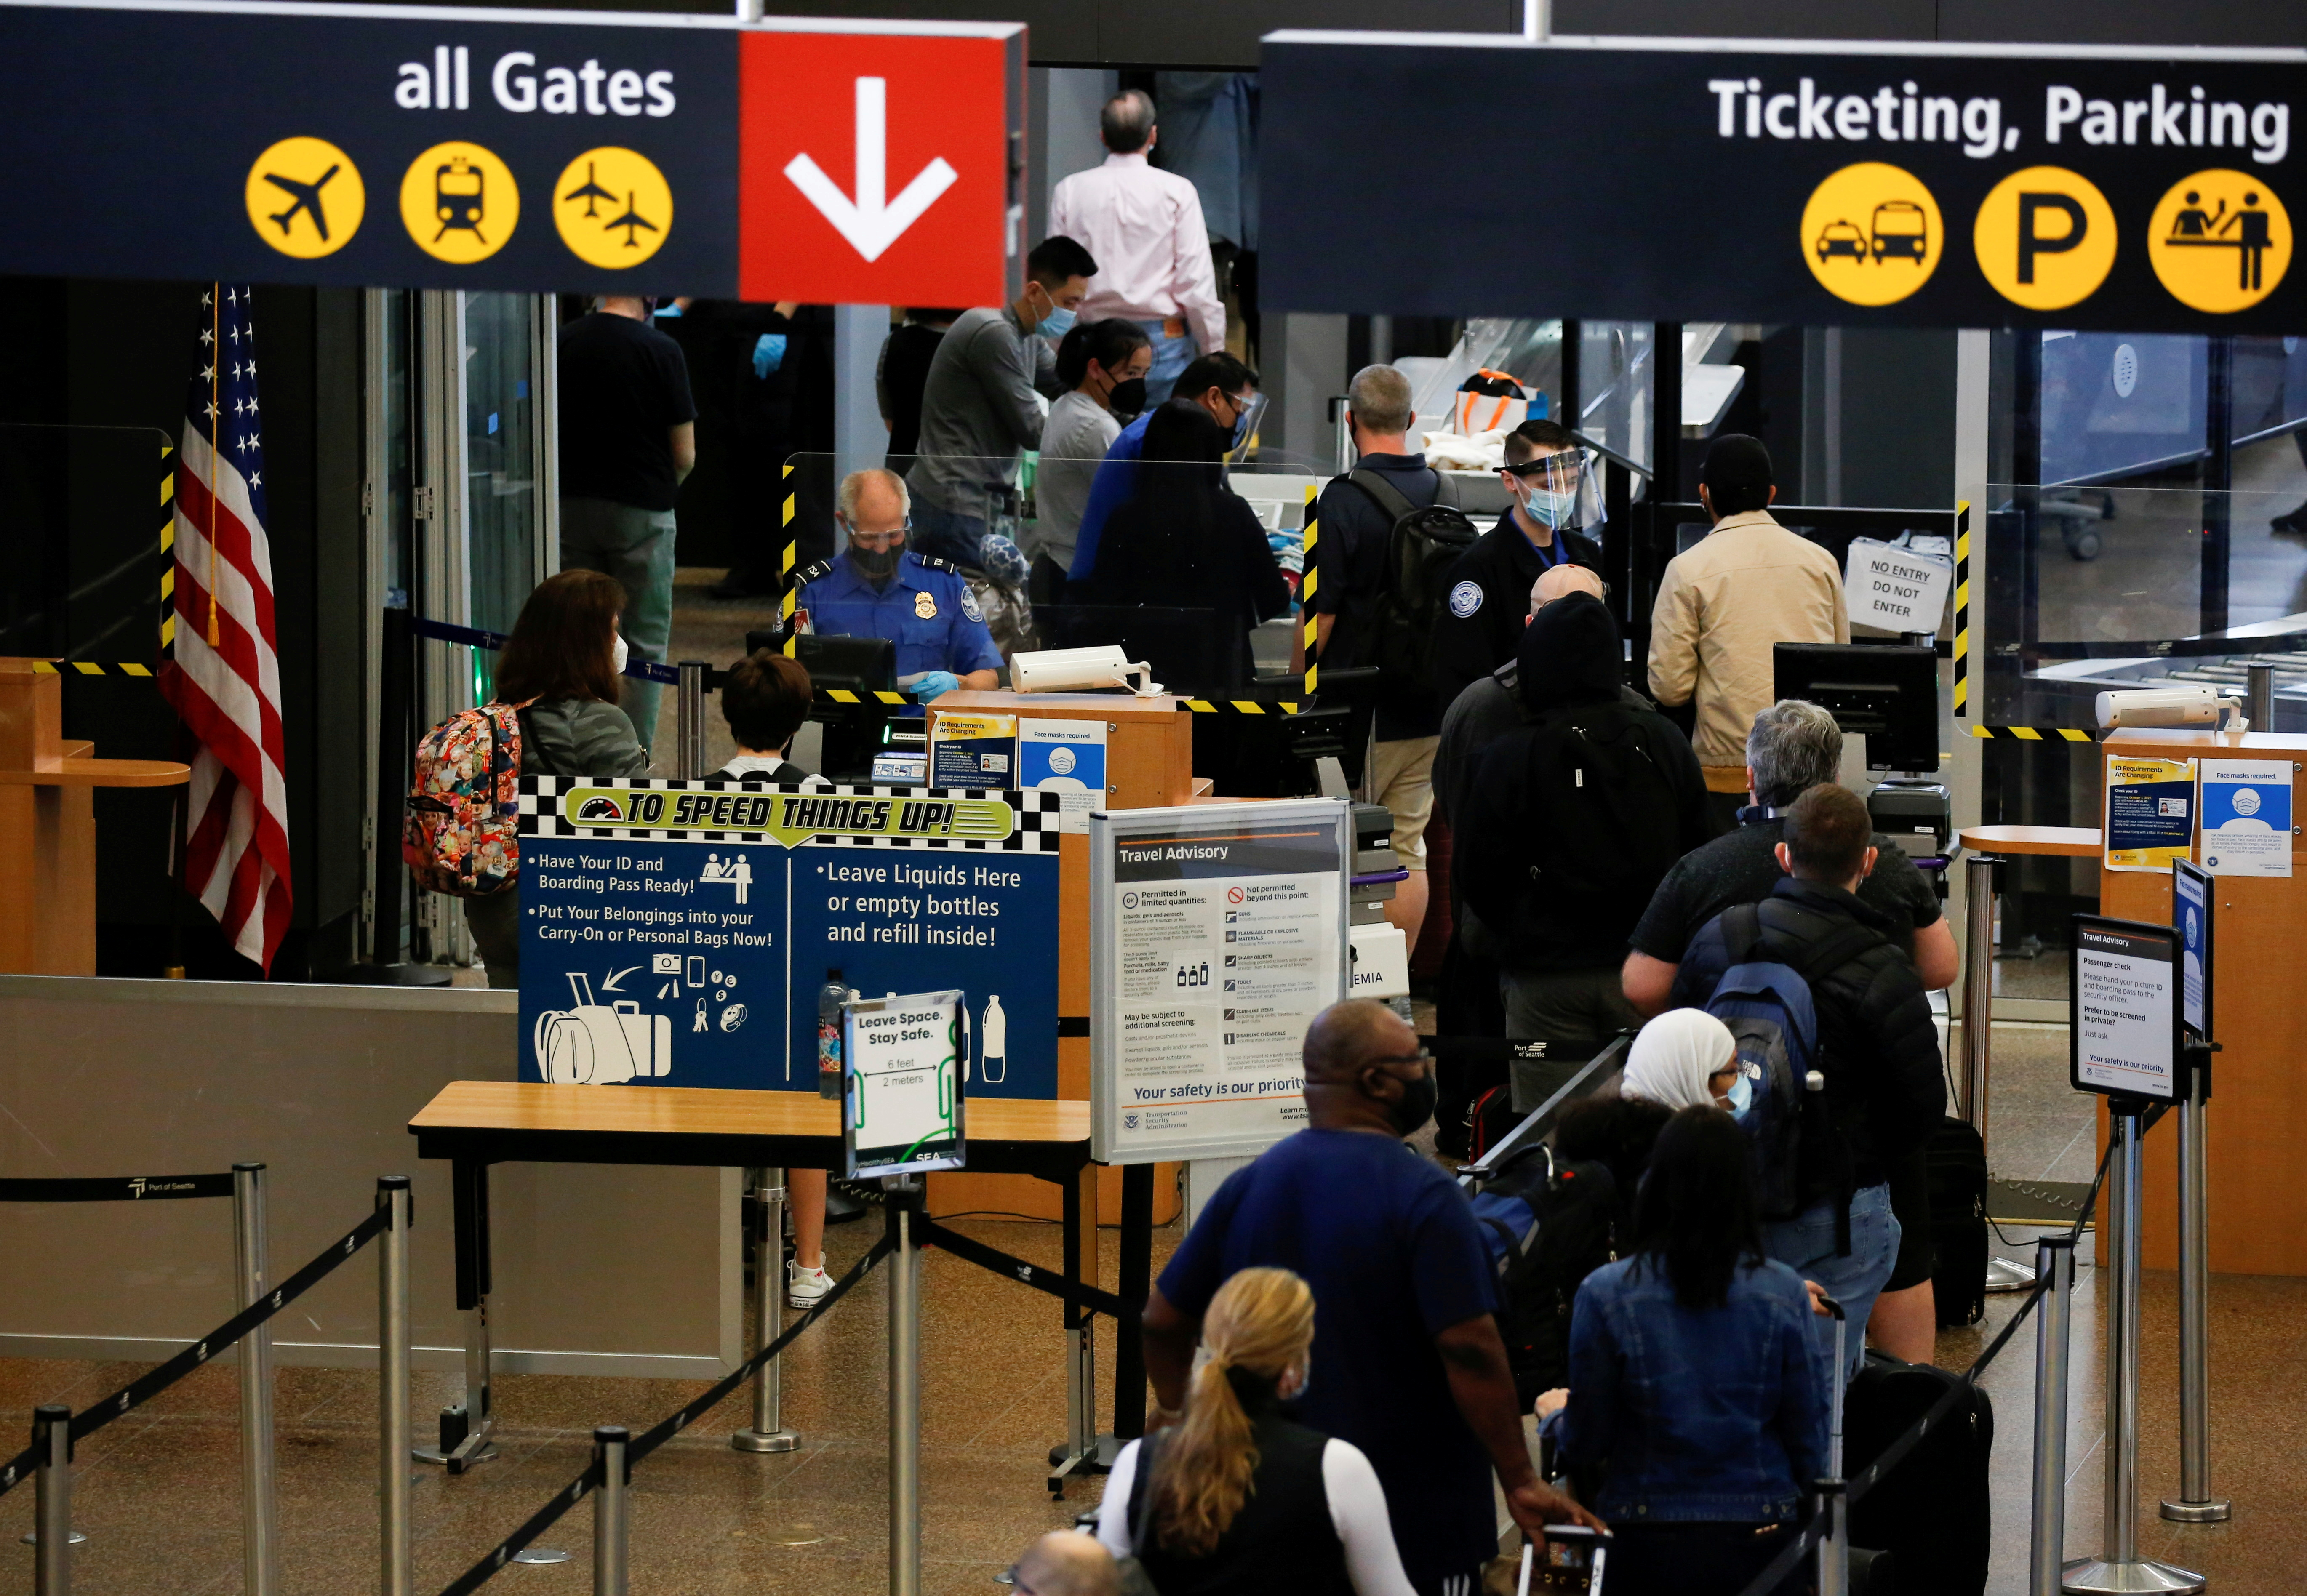 Travelers queue in a security line limited to every other lane for social distancing at Seattle-Tacoma International Airport in SeaTac, Washington, U.S. April 12, 2021.  REUTERS/Lindsey Wasson/File Photo